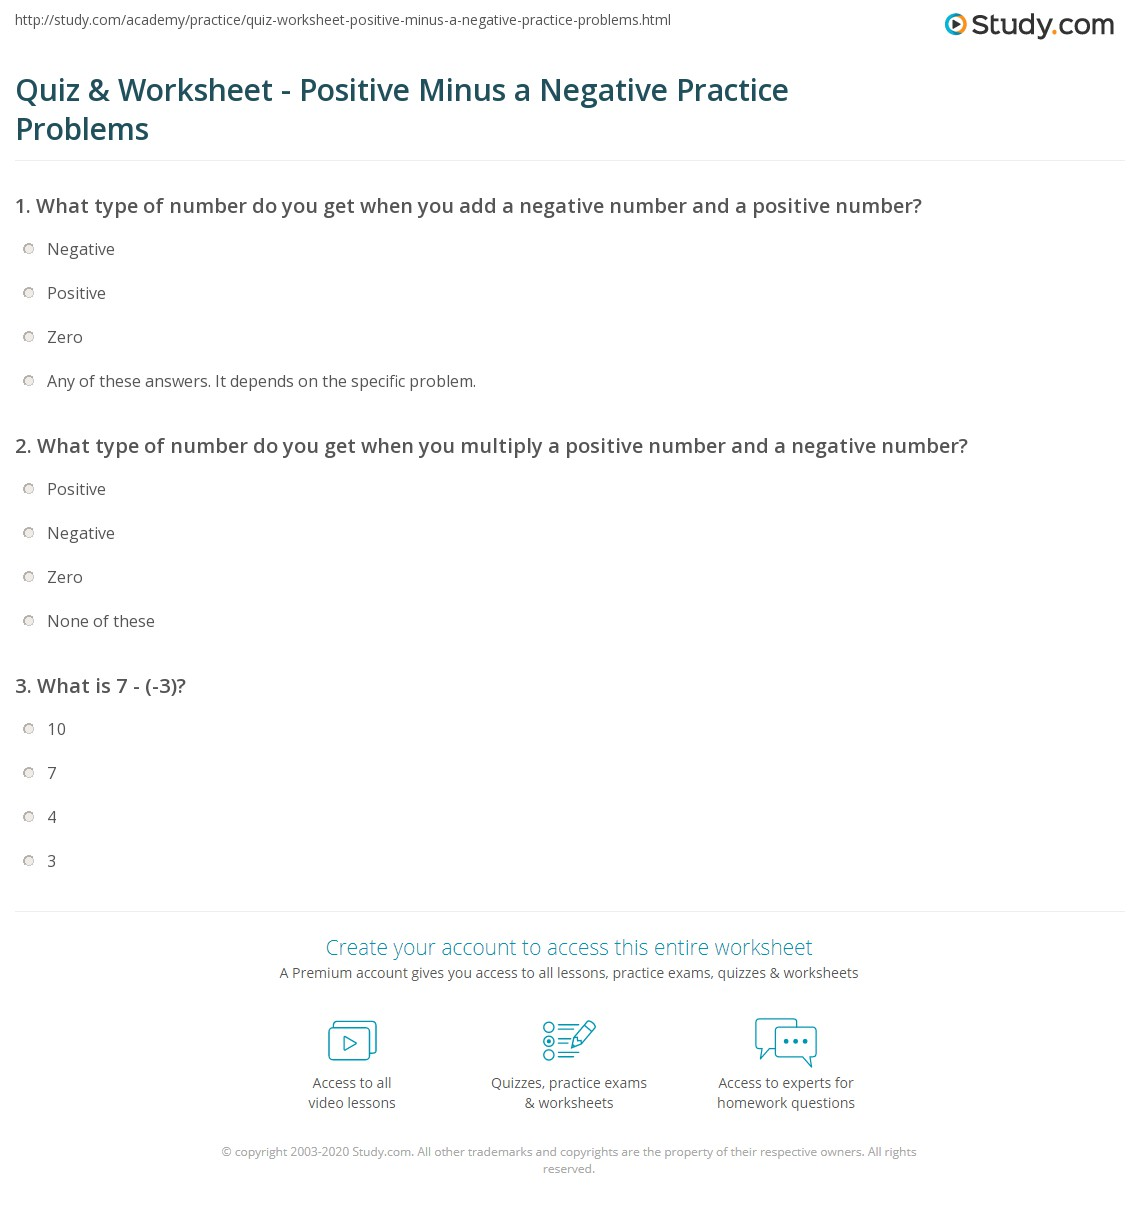 worksheet Multiplying Positive And Negative Numbers Worksheet quiz worksheet positive minus a negative practice problems what type of number do you get when multiply and number